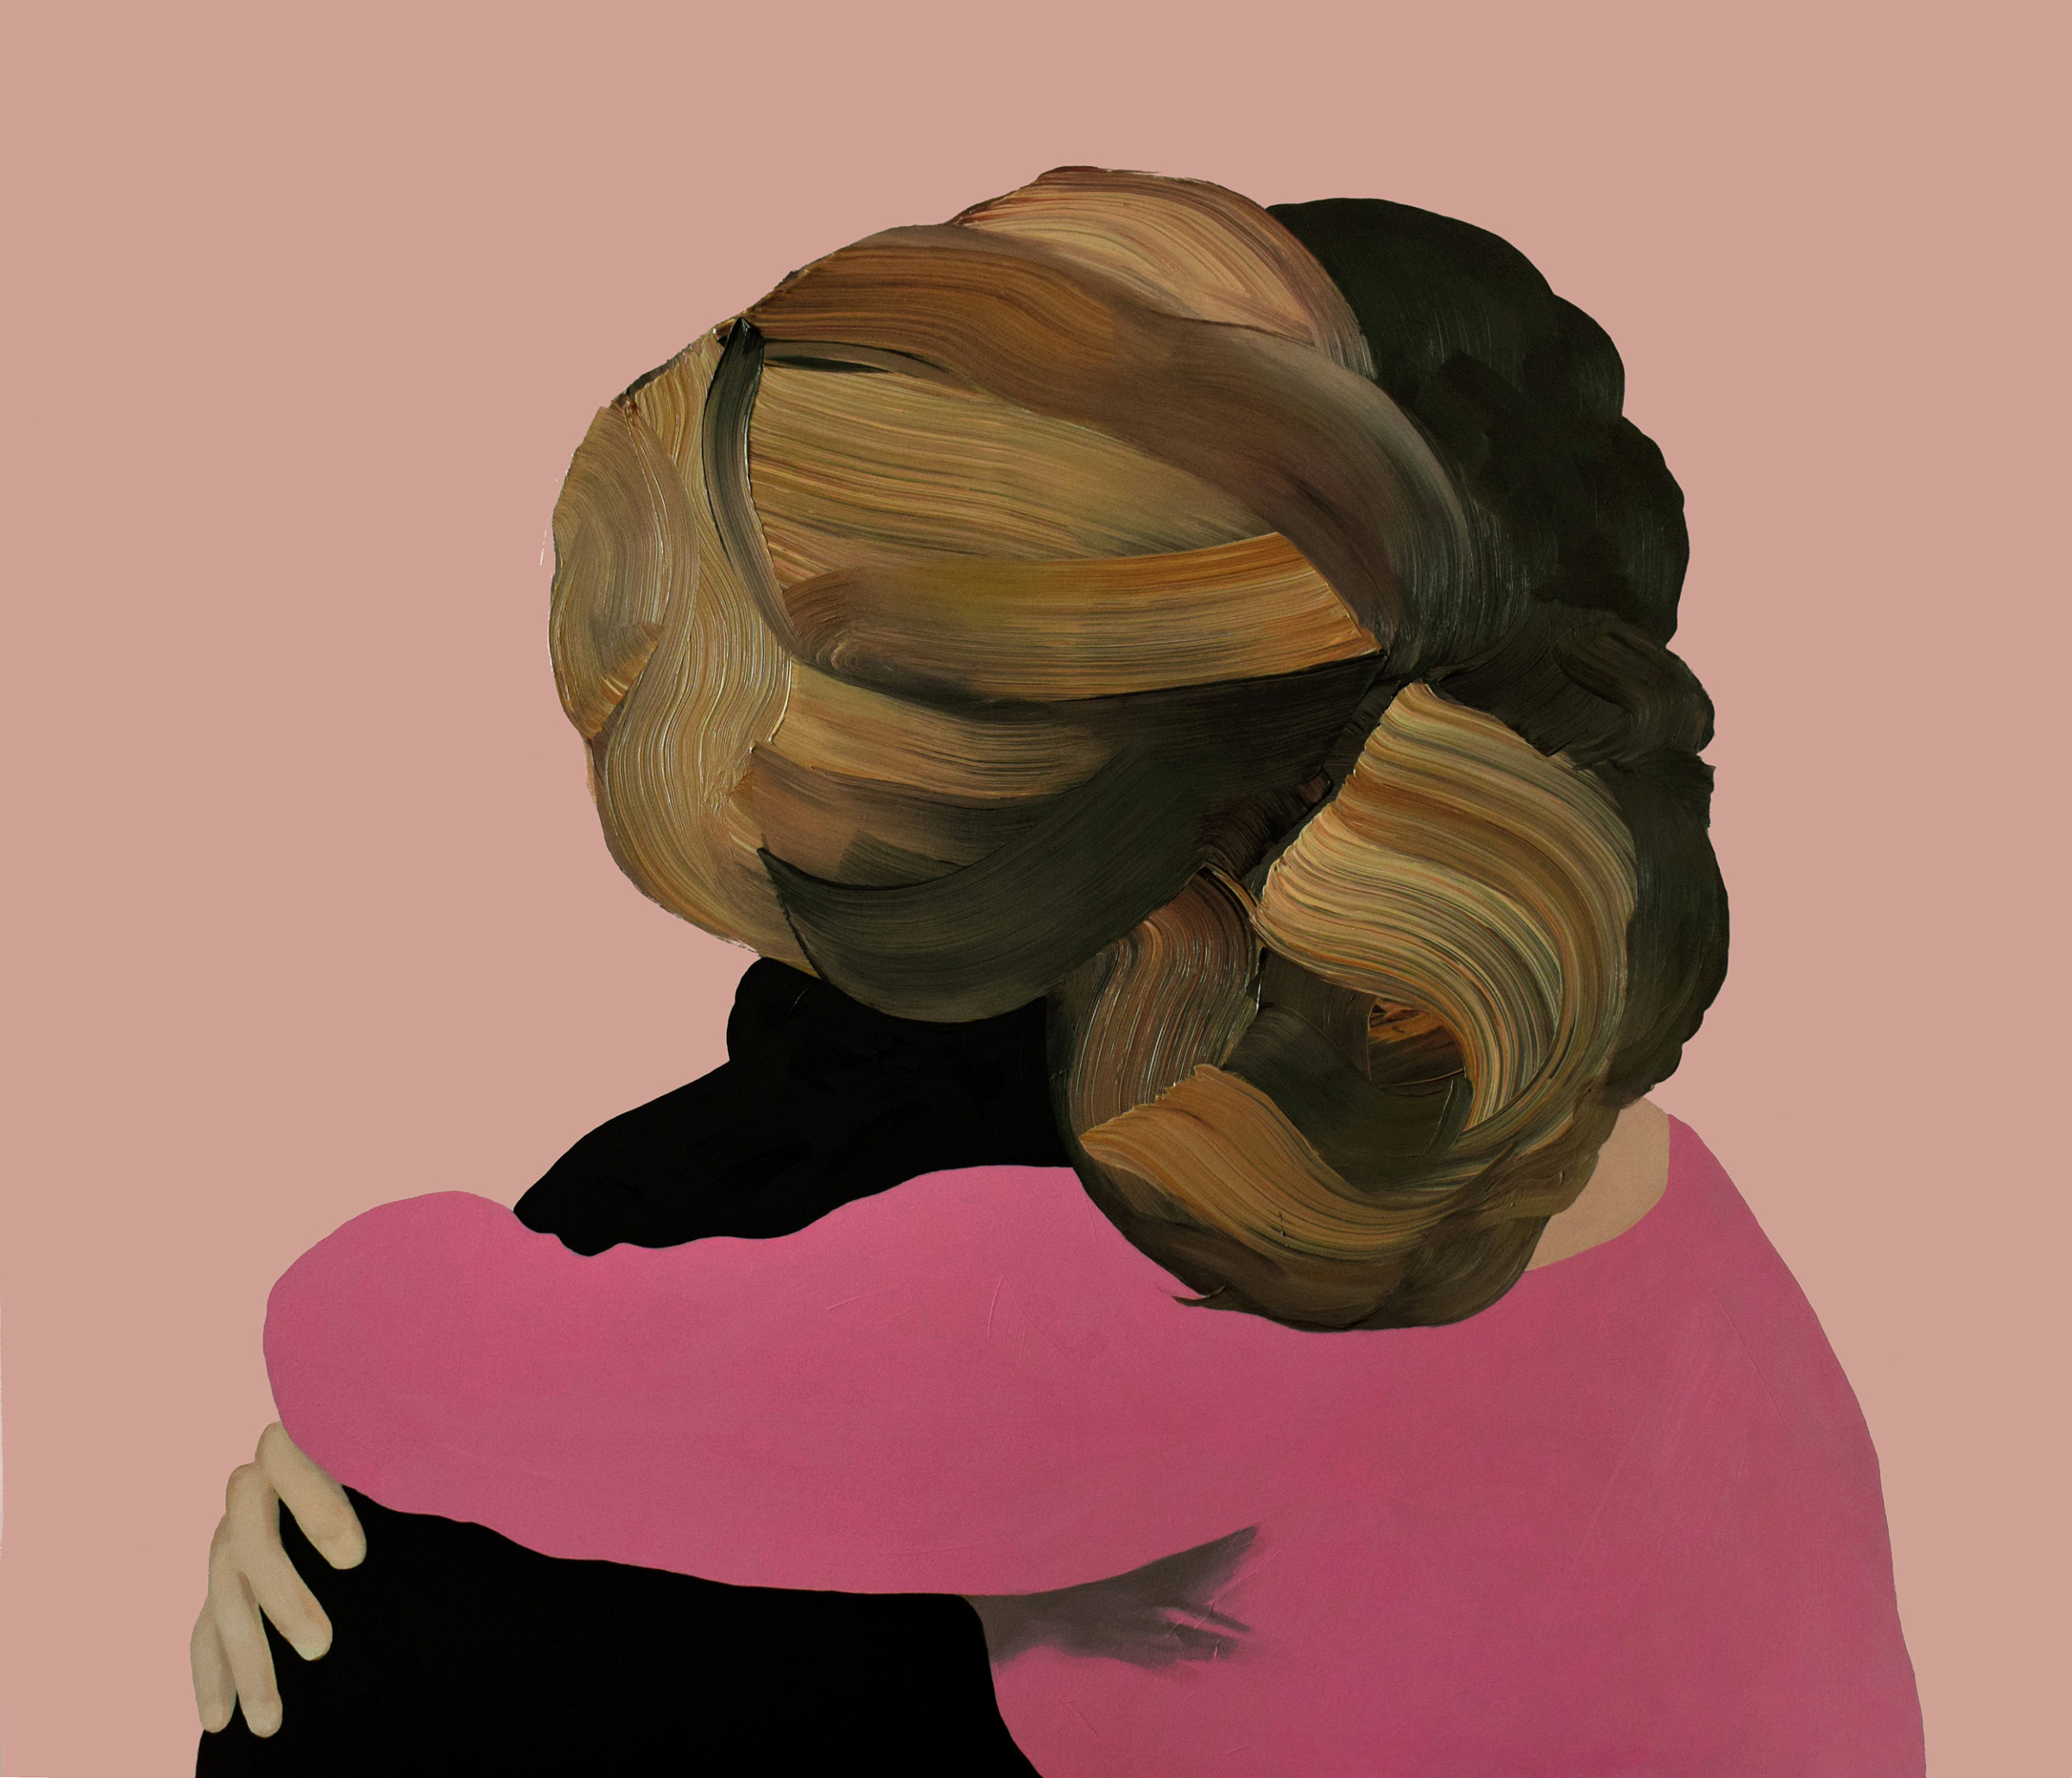 "<span class=""link fancybox-details-link""><a href=""/artists/54-jarek-puczel/works/334-jarek-puczel-entangled-ii/"">View Detail Page</a></span><div class=""artist""><strong>Jarek Puczel</strong></div> <div class=""title""><em>Entangled II</em></div> <div class=""medium"">Oil on Canvas</div> <div class=""dimensions"">47 x 55 inches</div>"